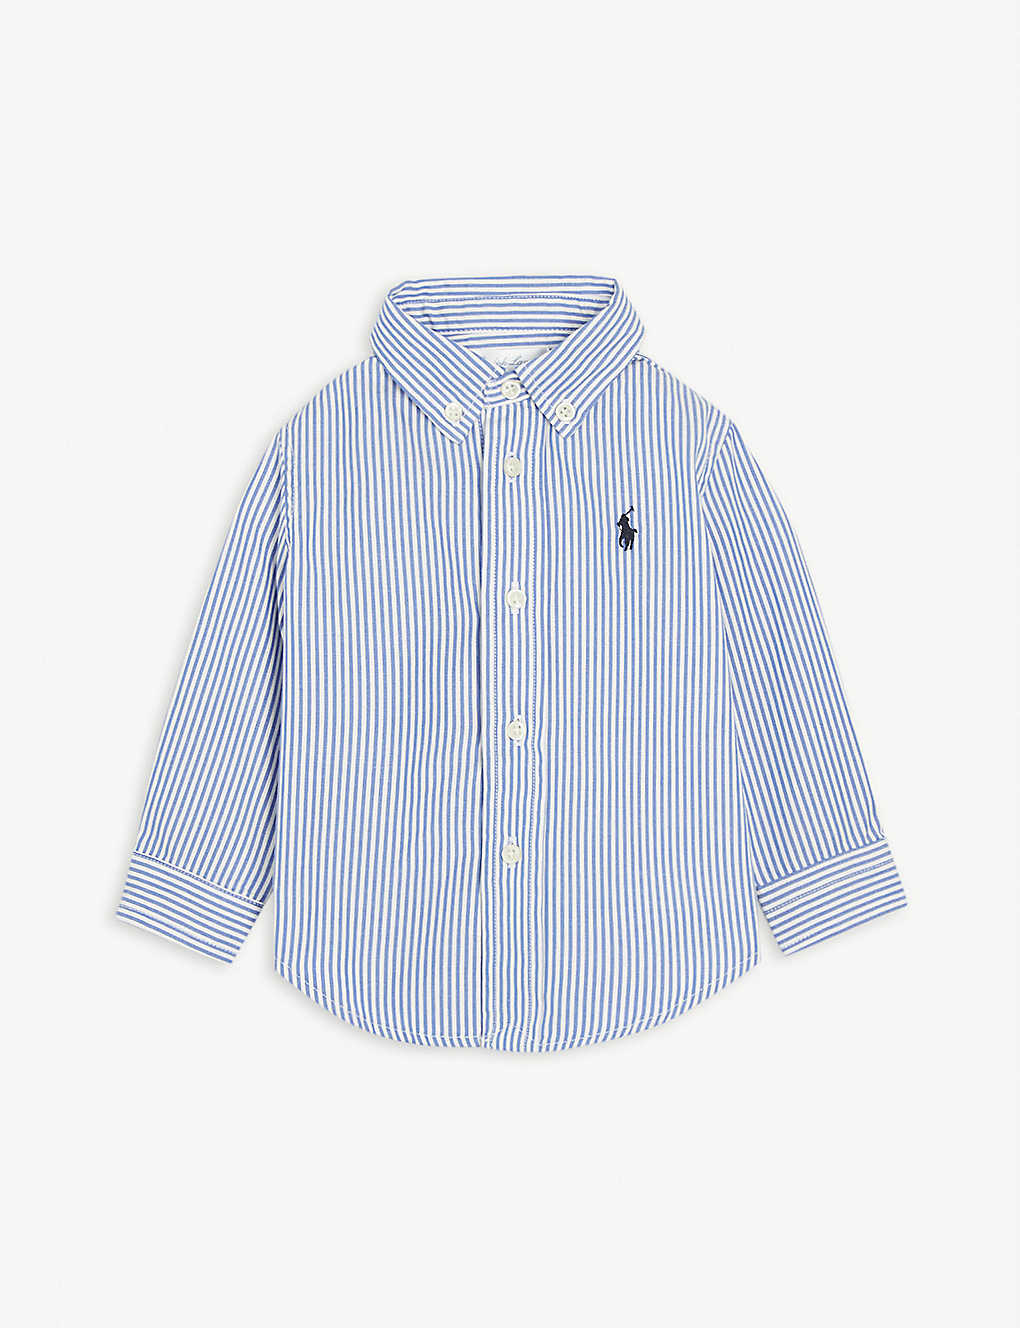 RALPH LAUREN: Striped cotton shirt 9-24 months